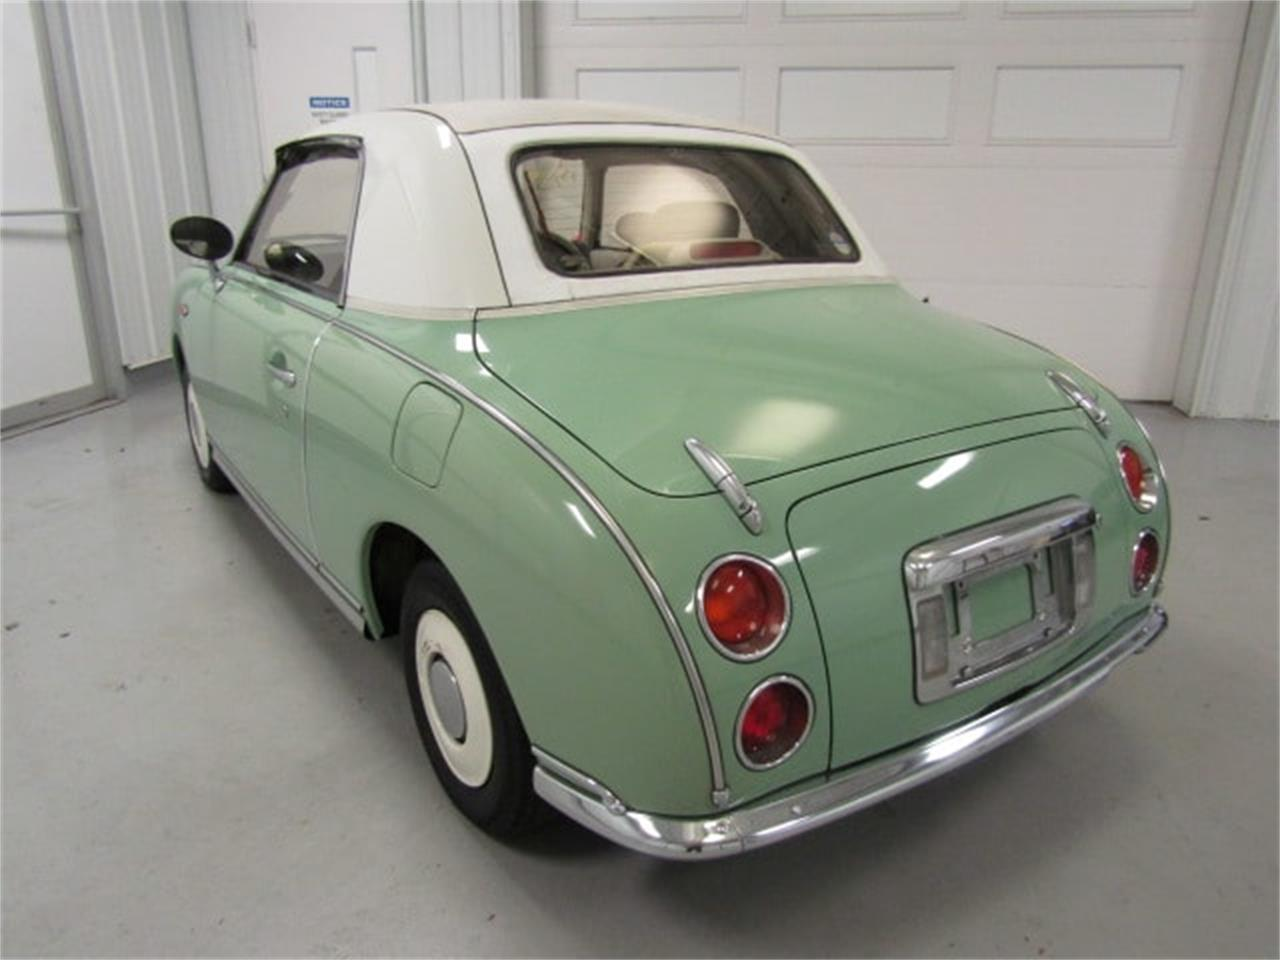 Large Picture of '91 Nissan Figaro located in Christiansburg Virginia - $18,900.00 - KAQD